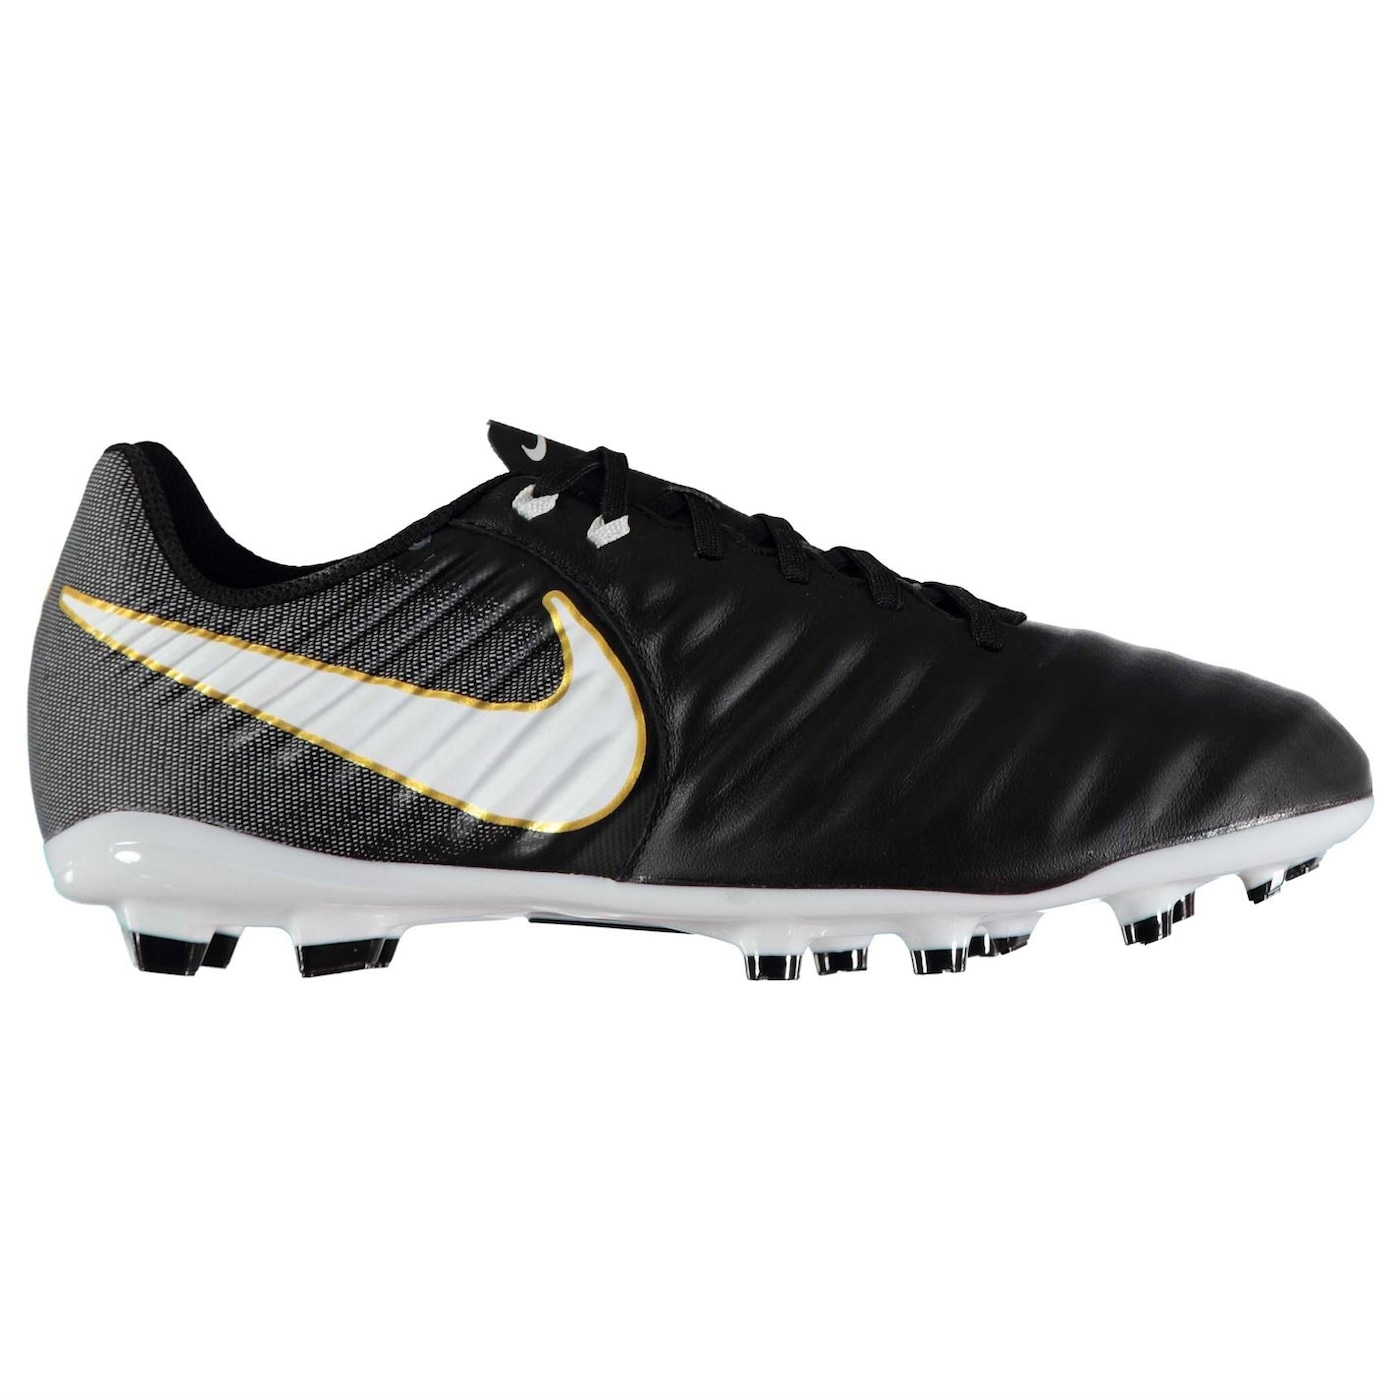 Nike Tiempo Ligera FG Junior Football Boots